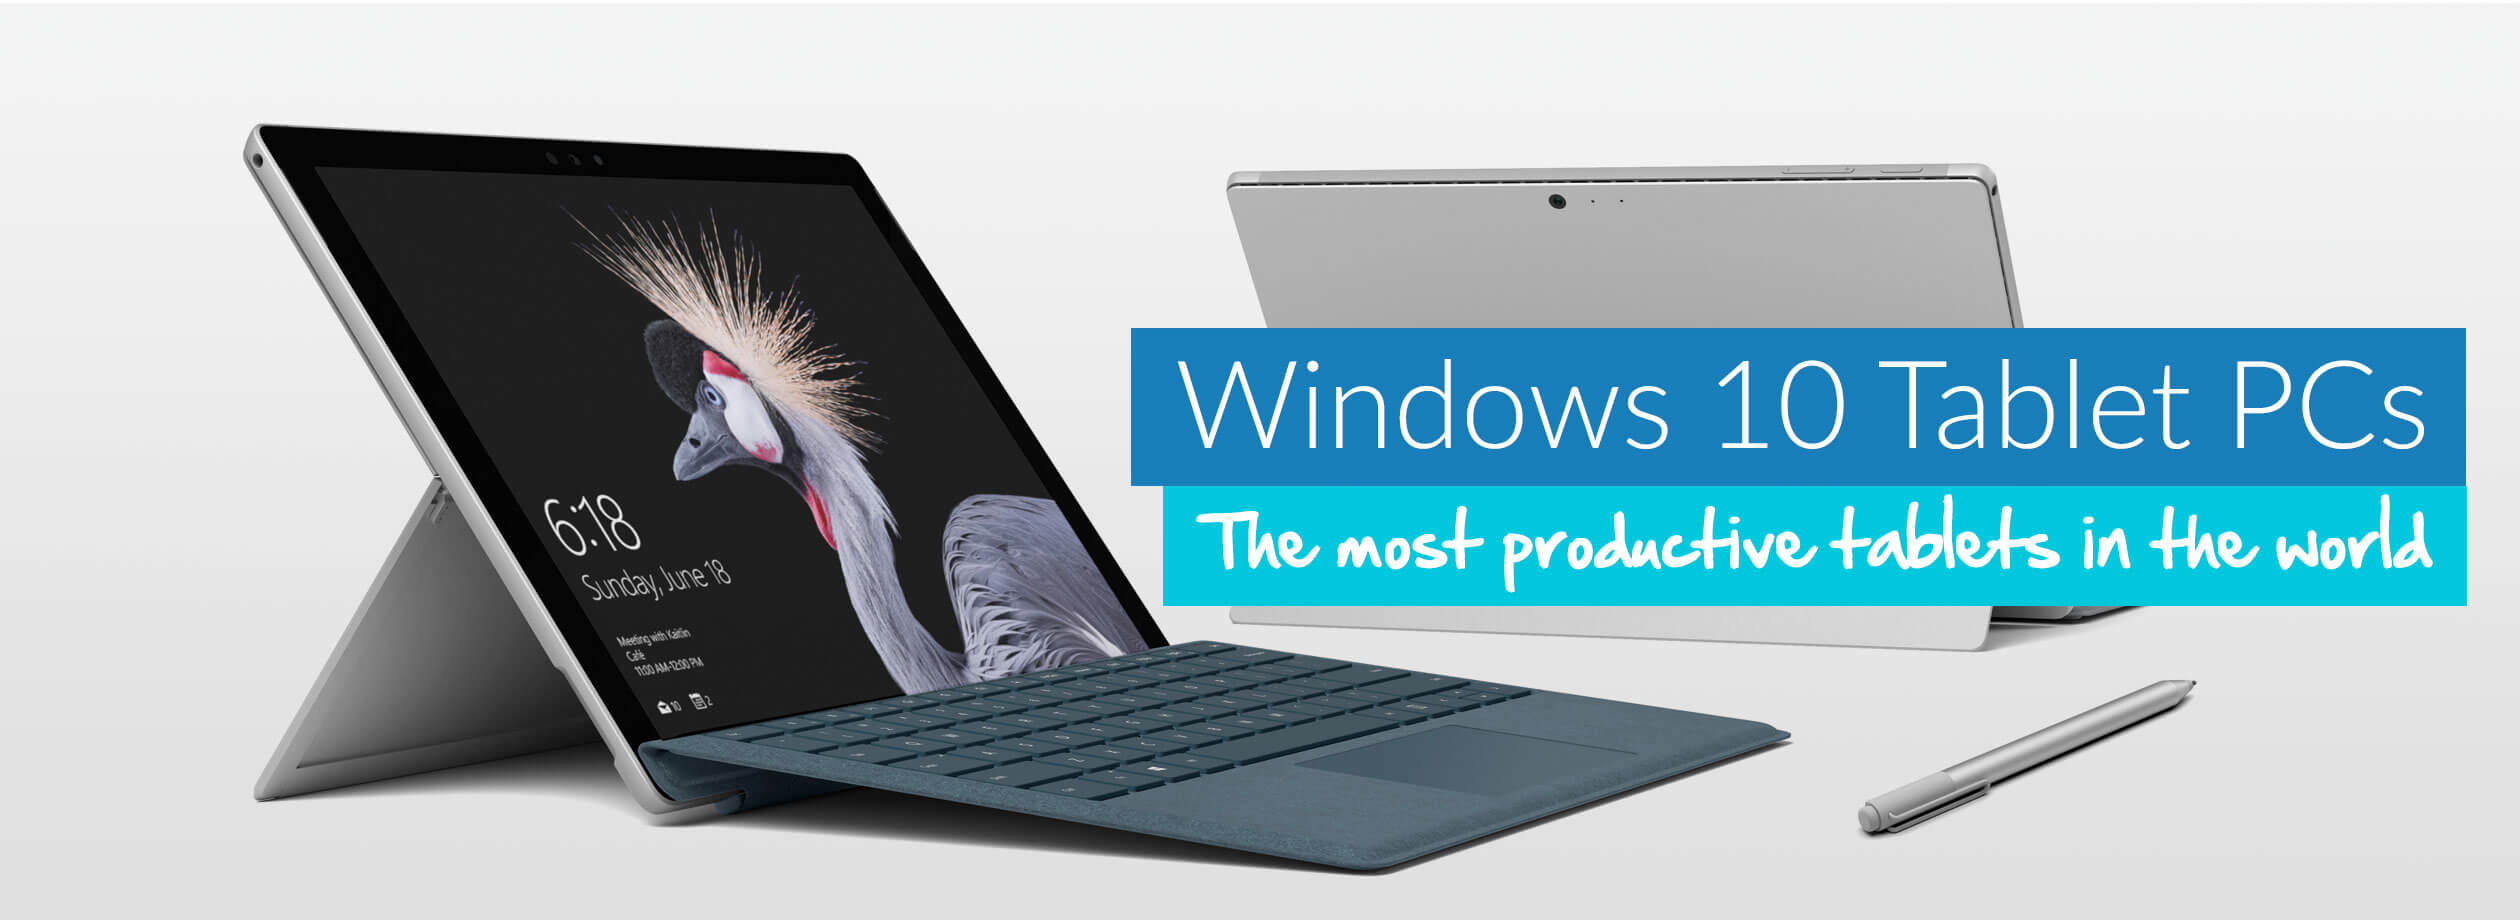 Windows 10 Tablet PCs